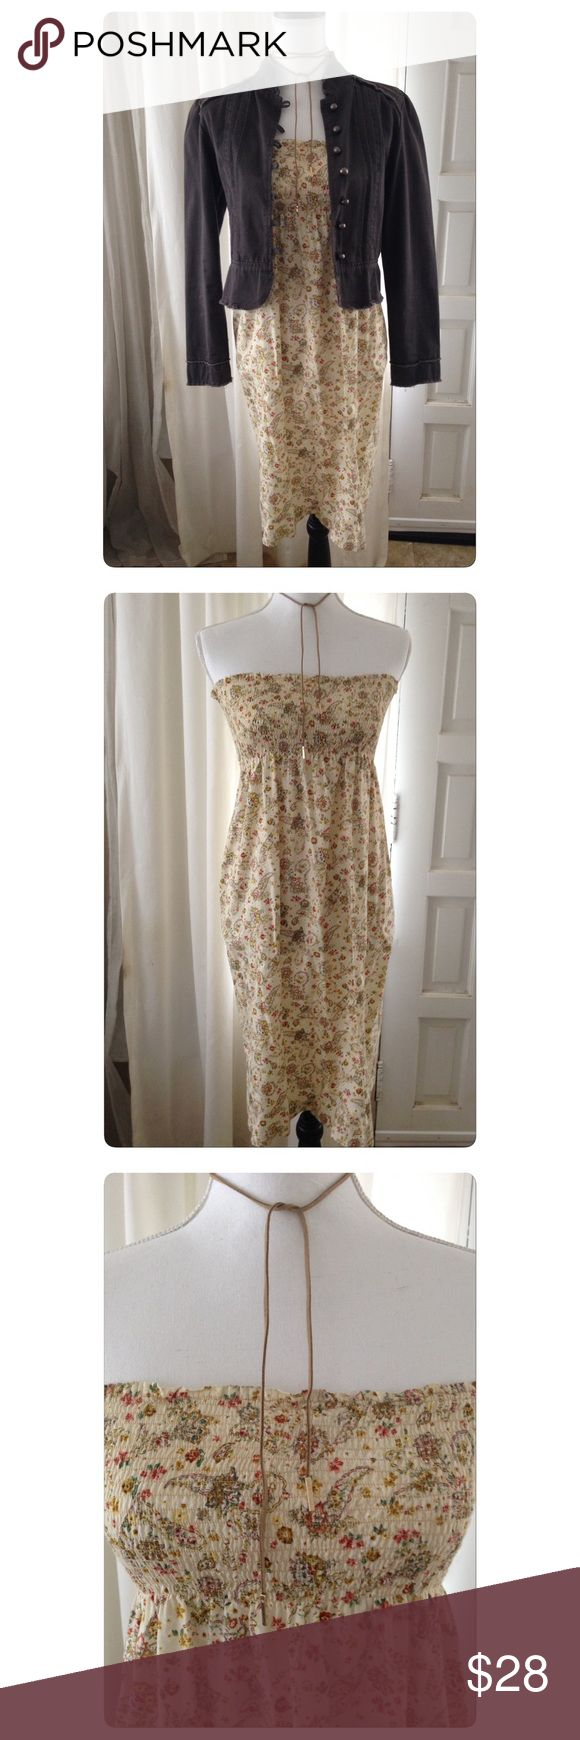 Smocked Top Dress Smocked top strapless dress in shades of a soft yellow, rust and brown paisley and floral print. Style it Boho or pair it with your favorite cowboy boots and fringe bag! Dresses Strapless